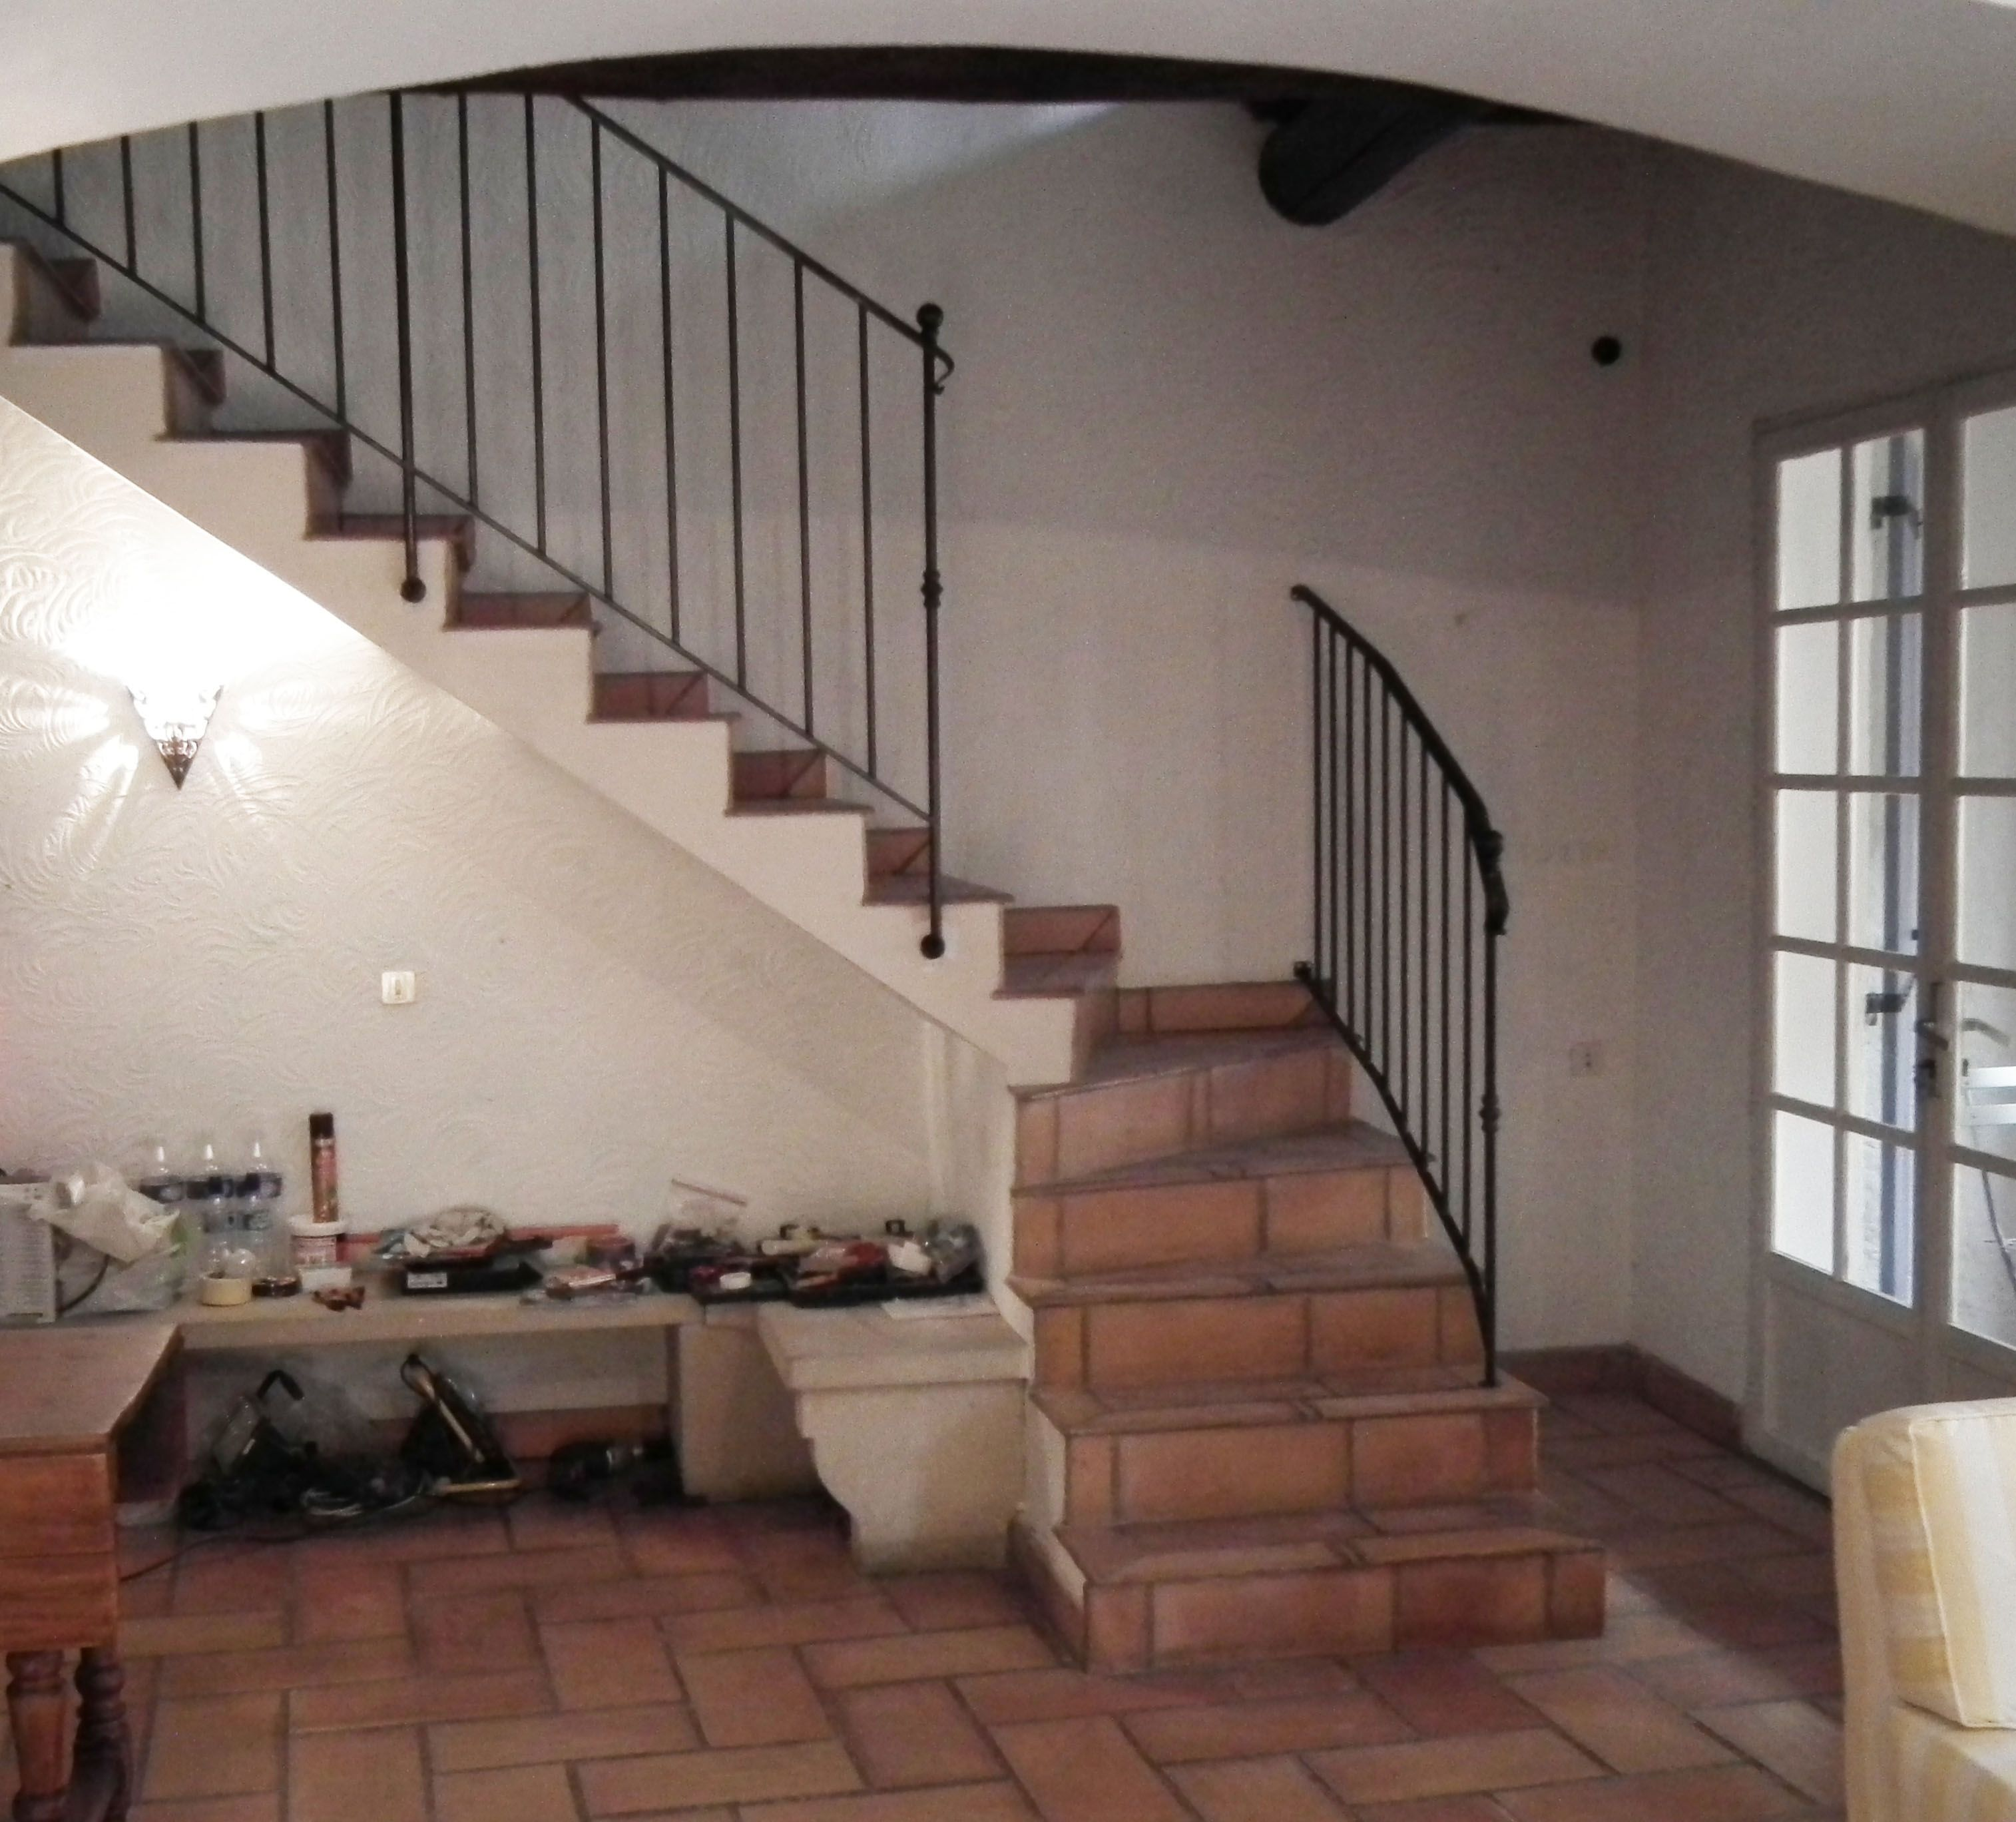 new stairs design our new stair railing we love the simple yet traditional - Wall Railings Designs